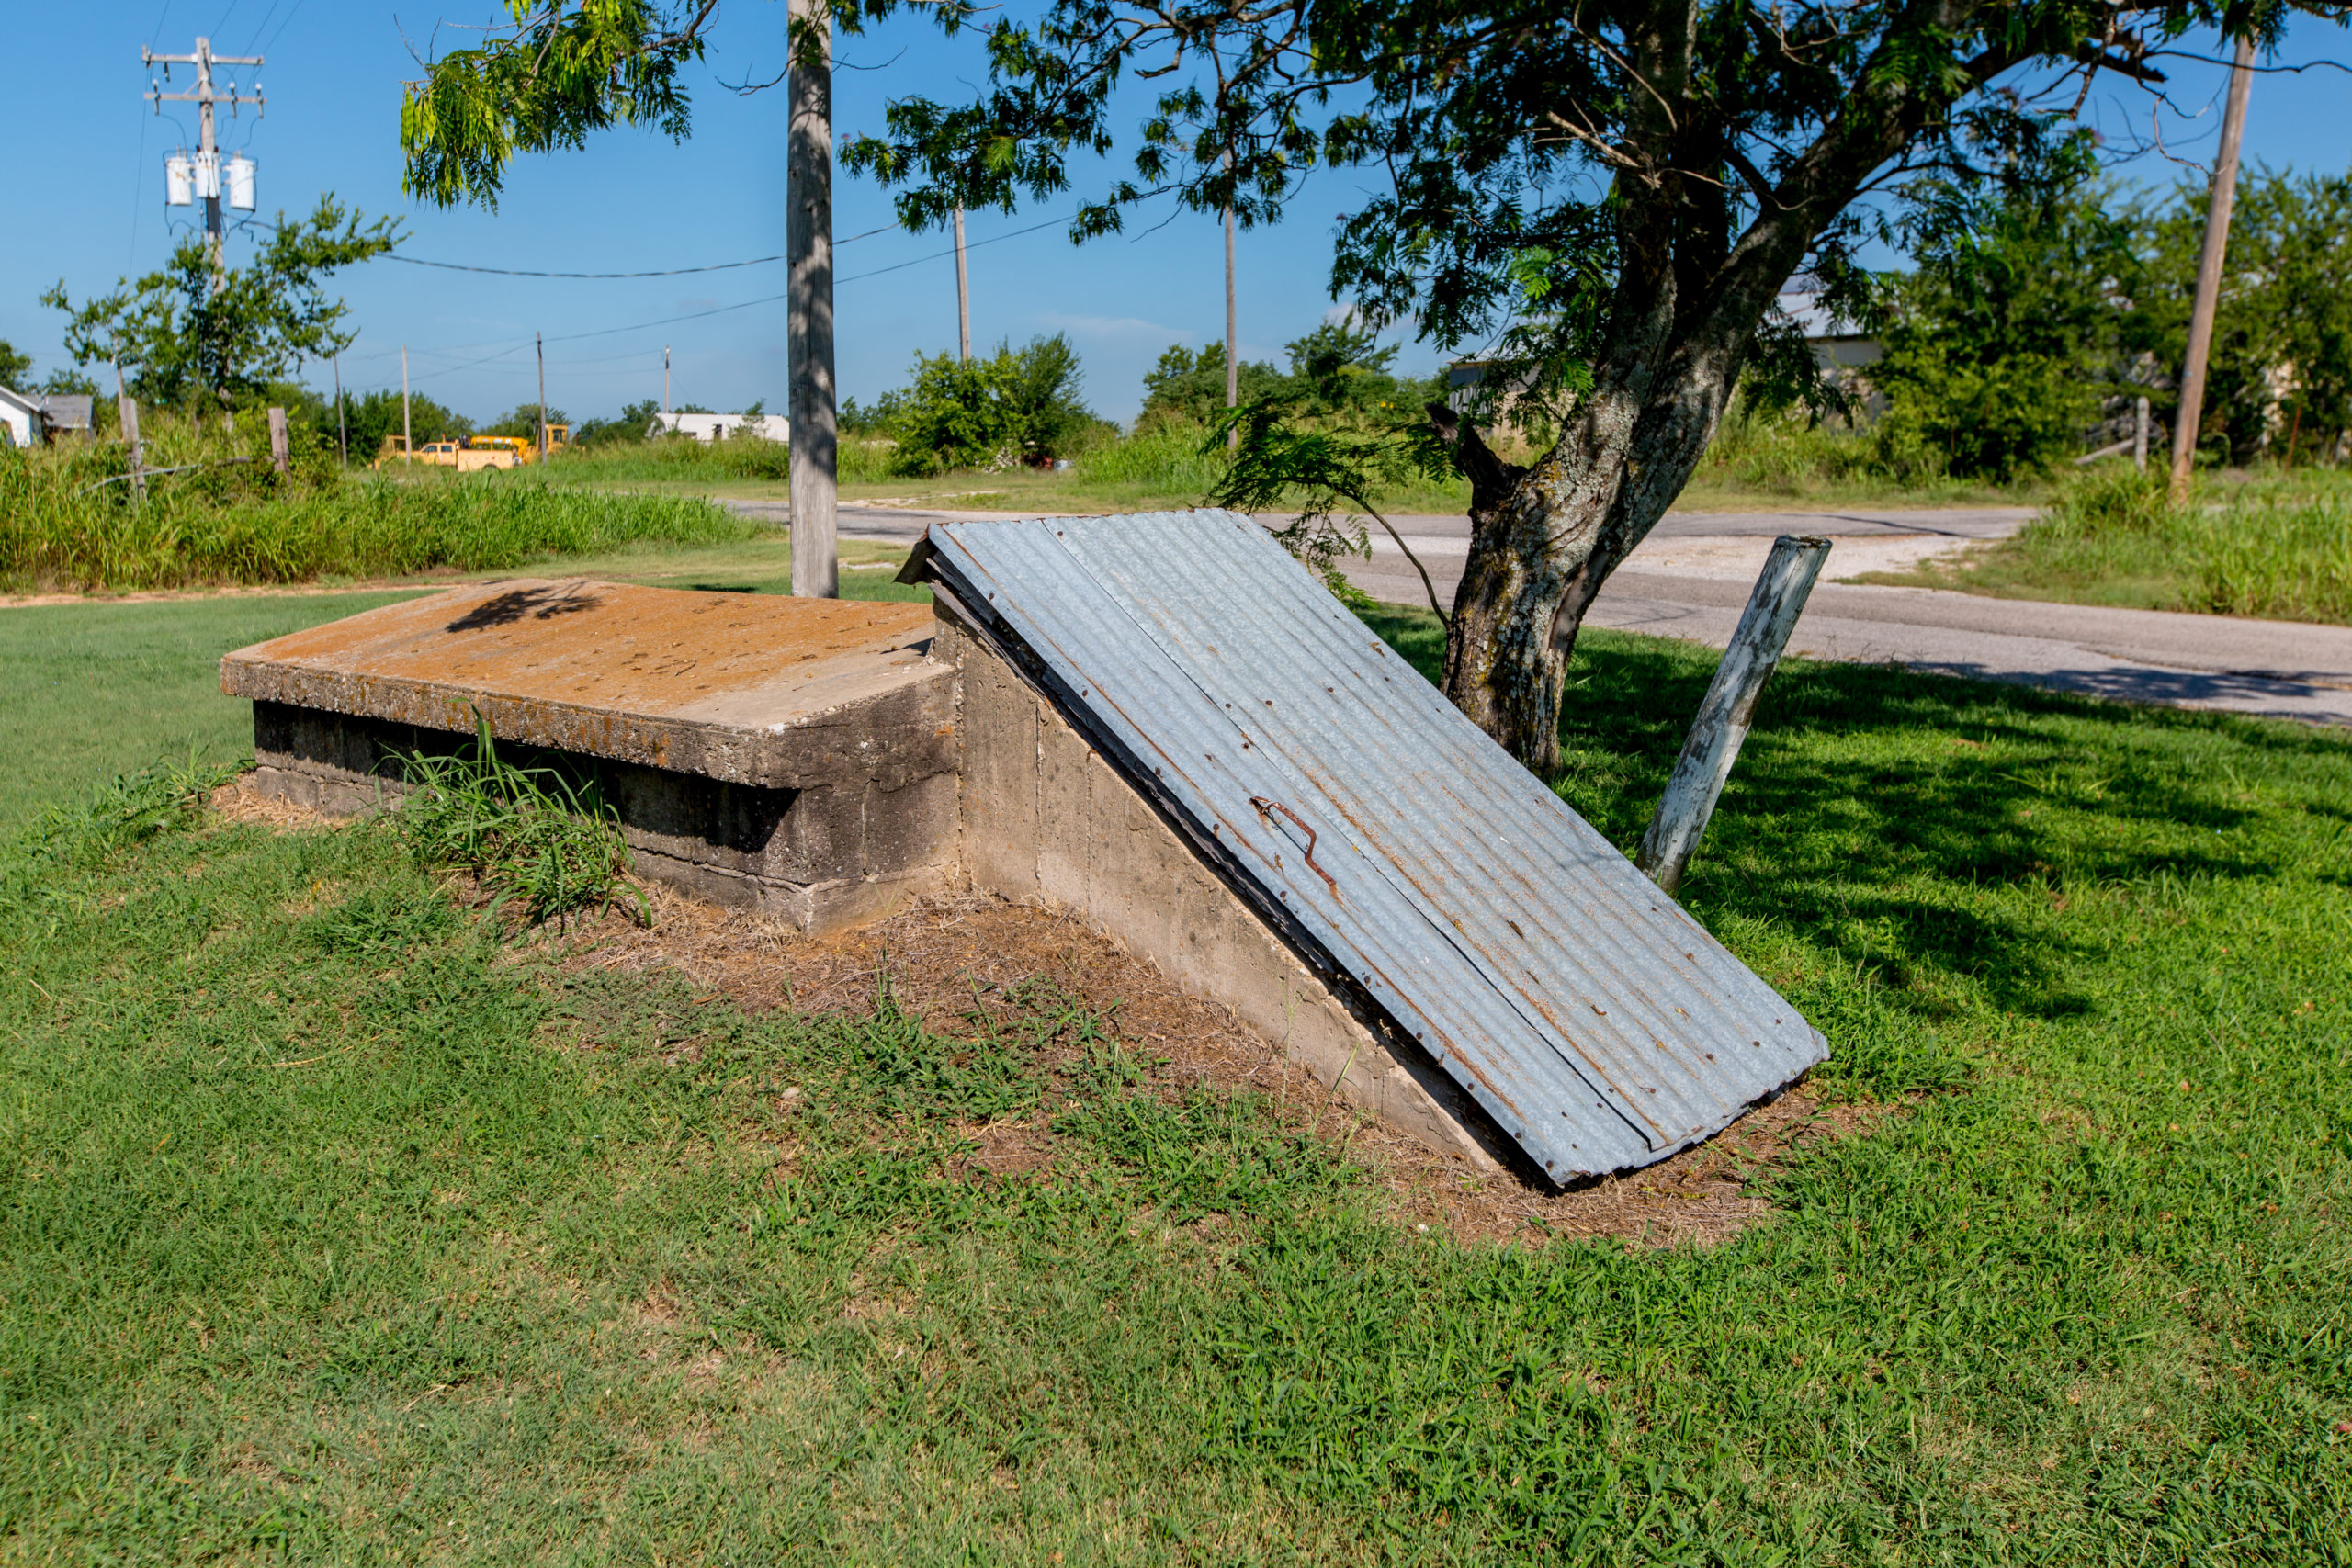 How to Build an Emergency Shelter for Your Family